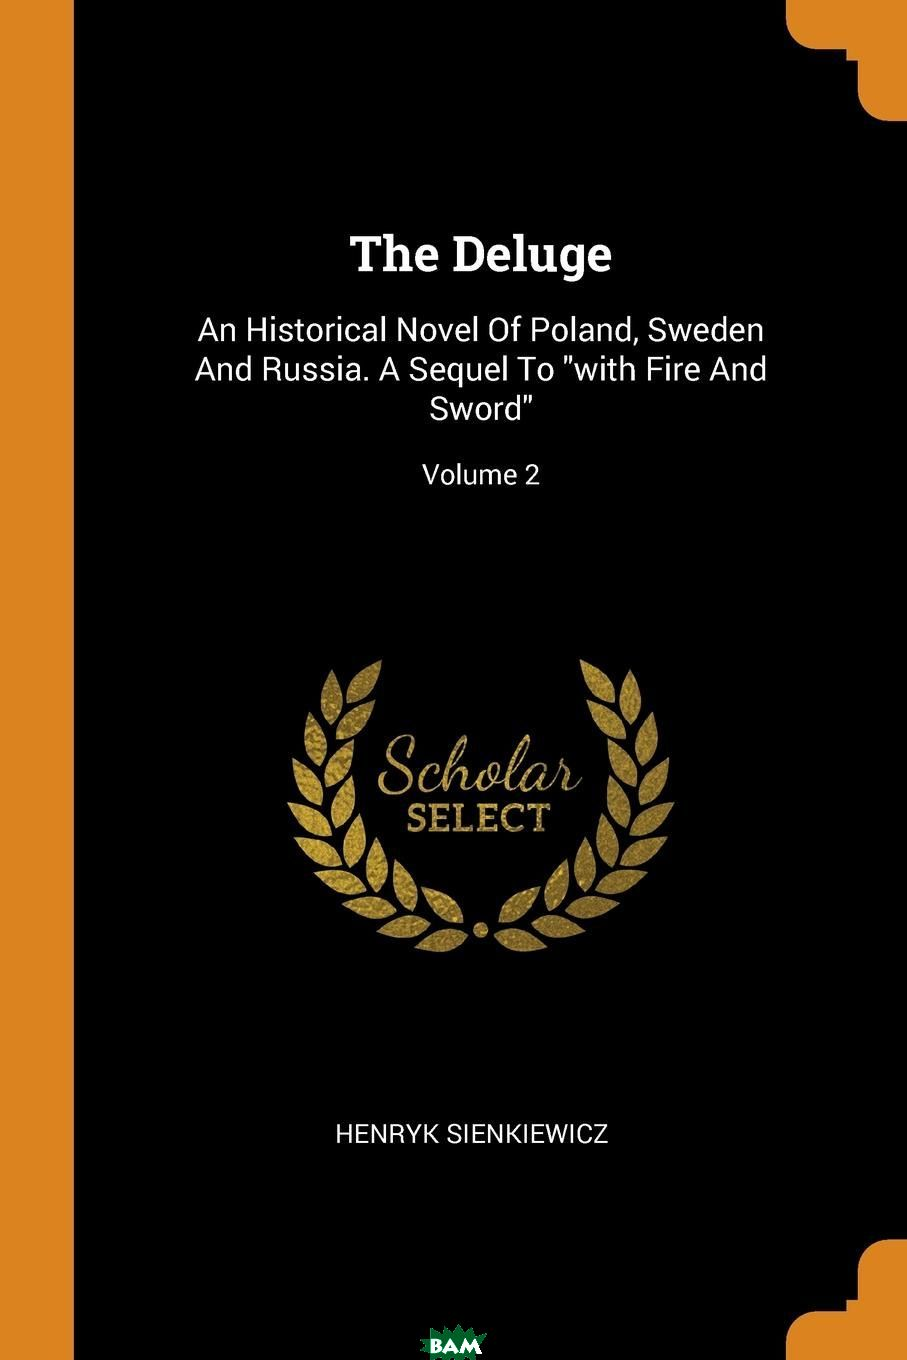 Купить The Deluge. An Historical Novel Of Poland, Sweden And Russia. A Sequel To with Fire And Sword ; Volume 2, Sienkiewicz Henryk, 9780353554962